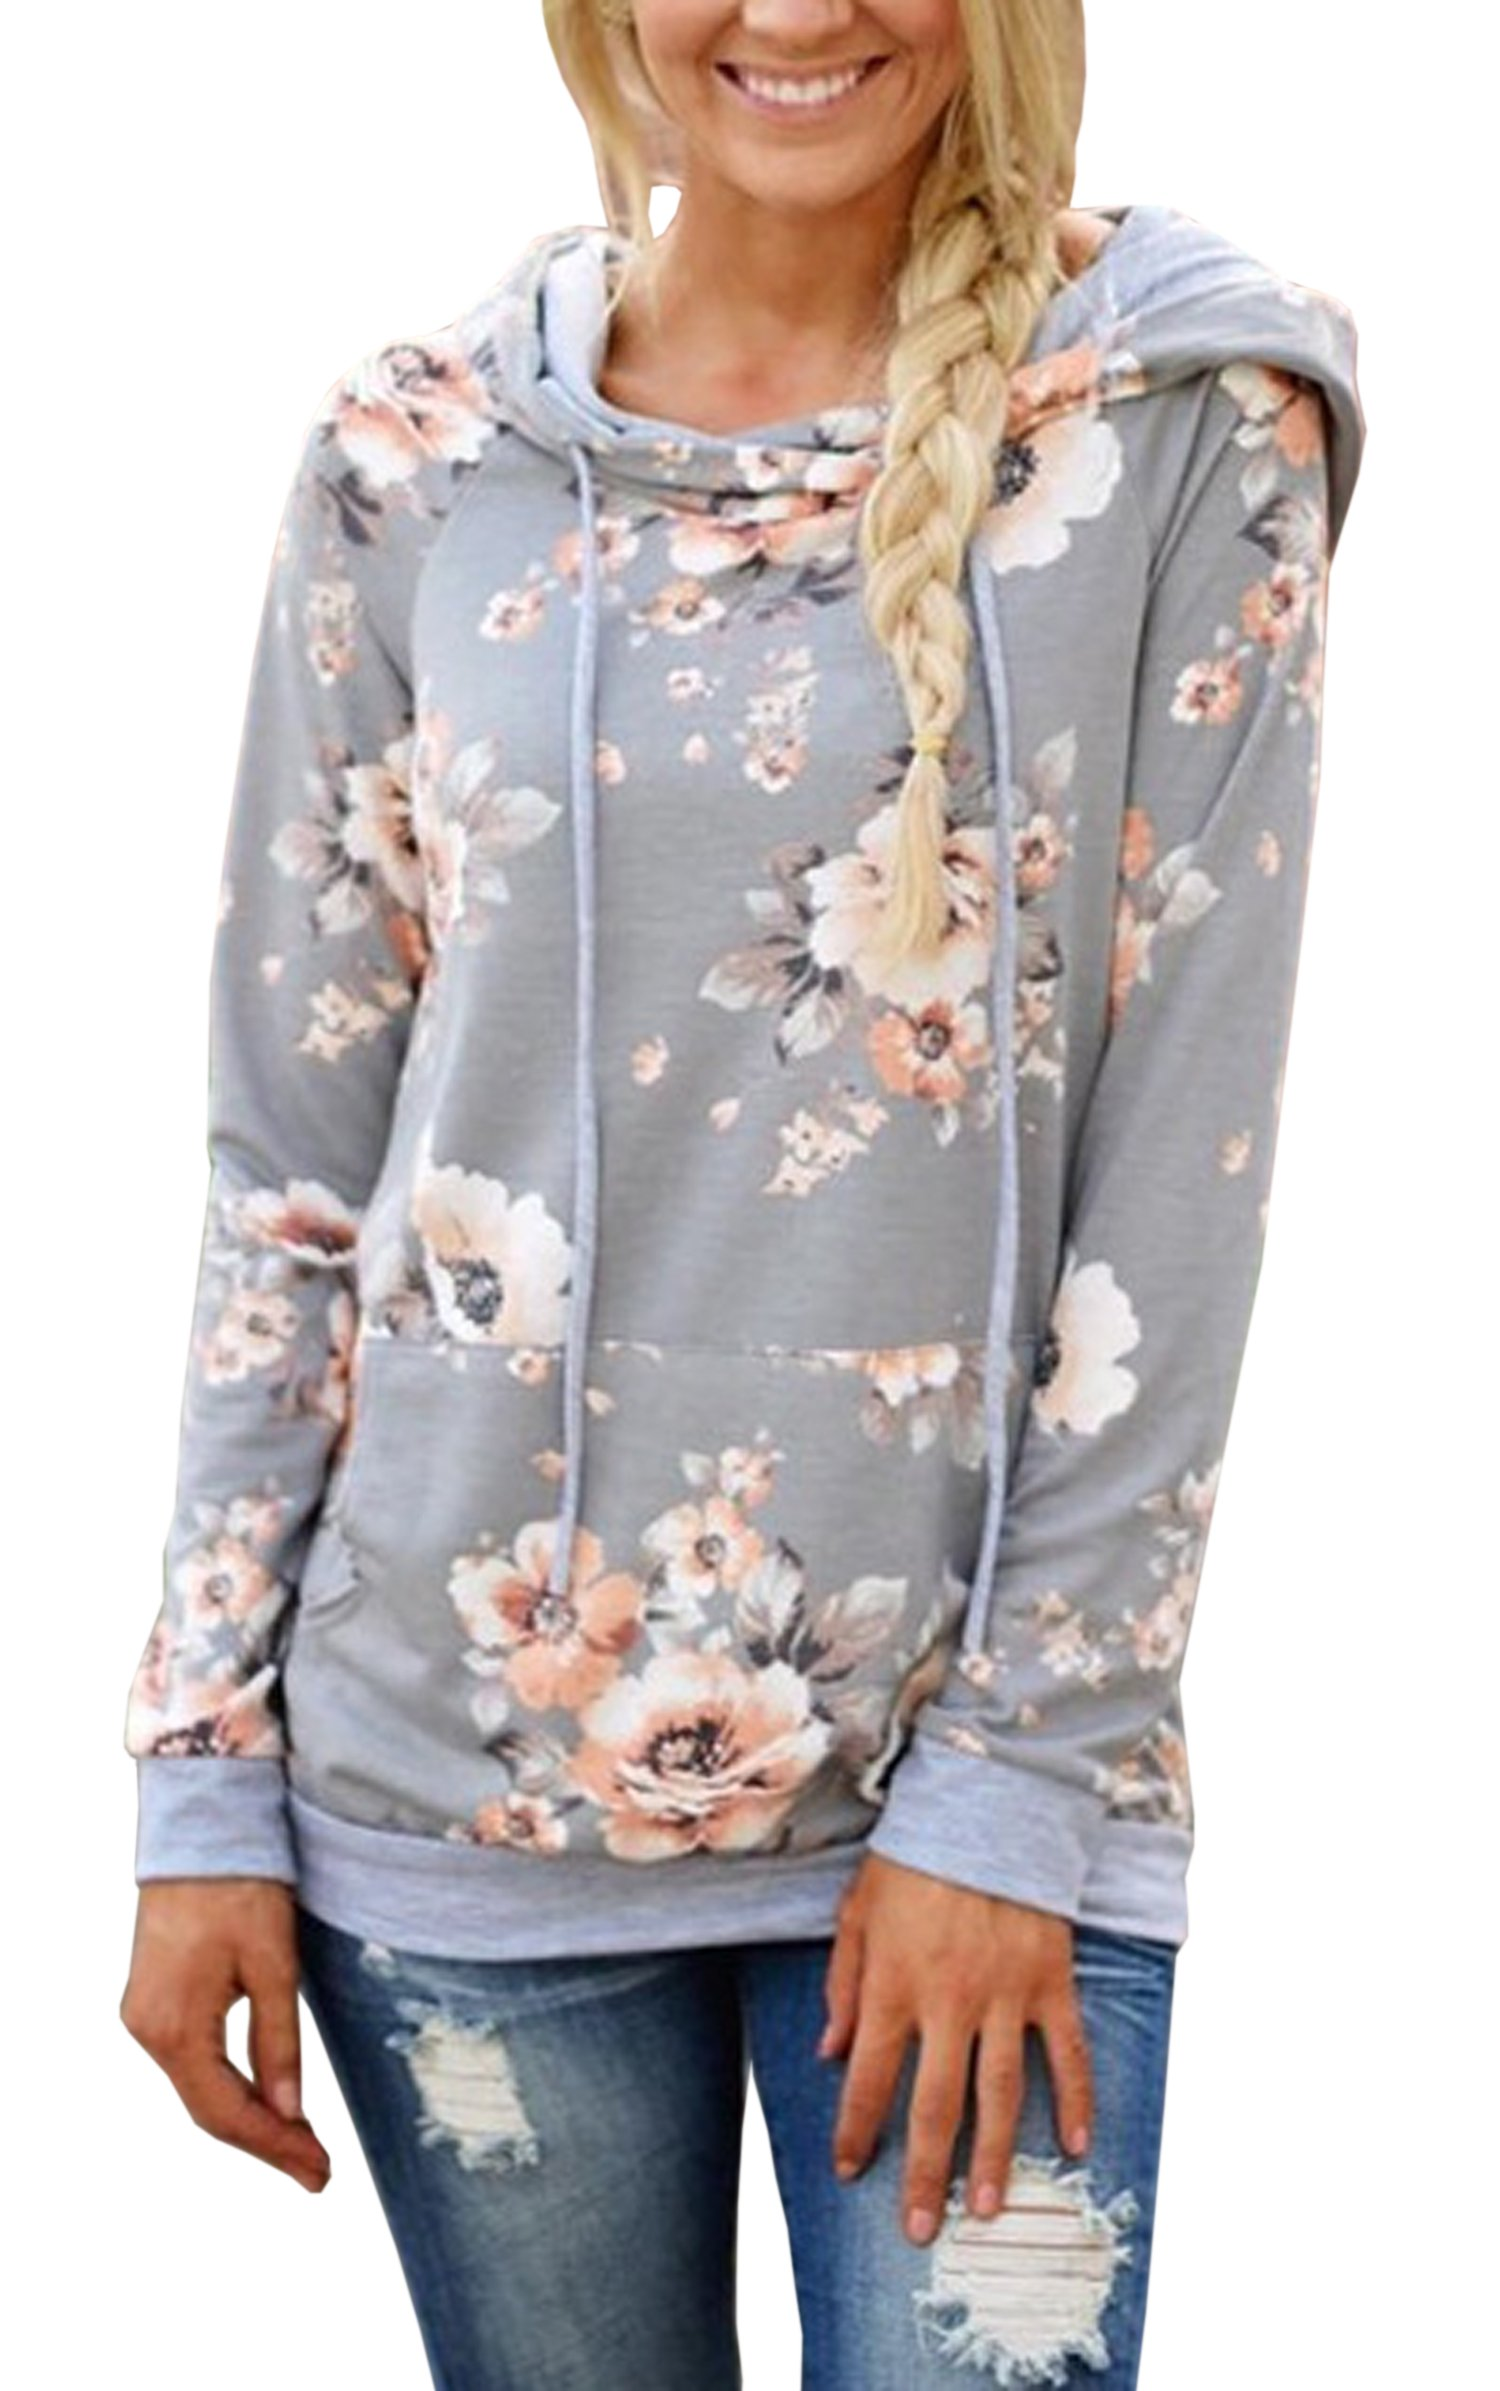 Hibluco Women's Casual Floral Printed Hoodie Pullover Sweatshirts with Pockets (Medium, Gray)